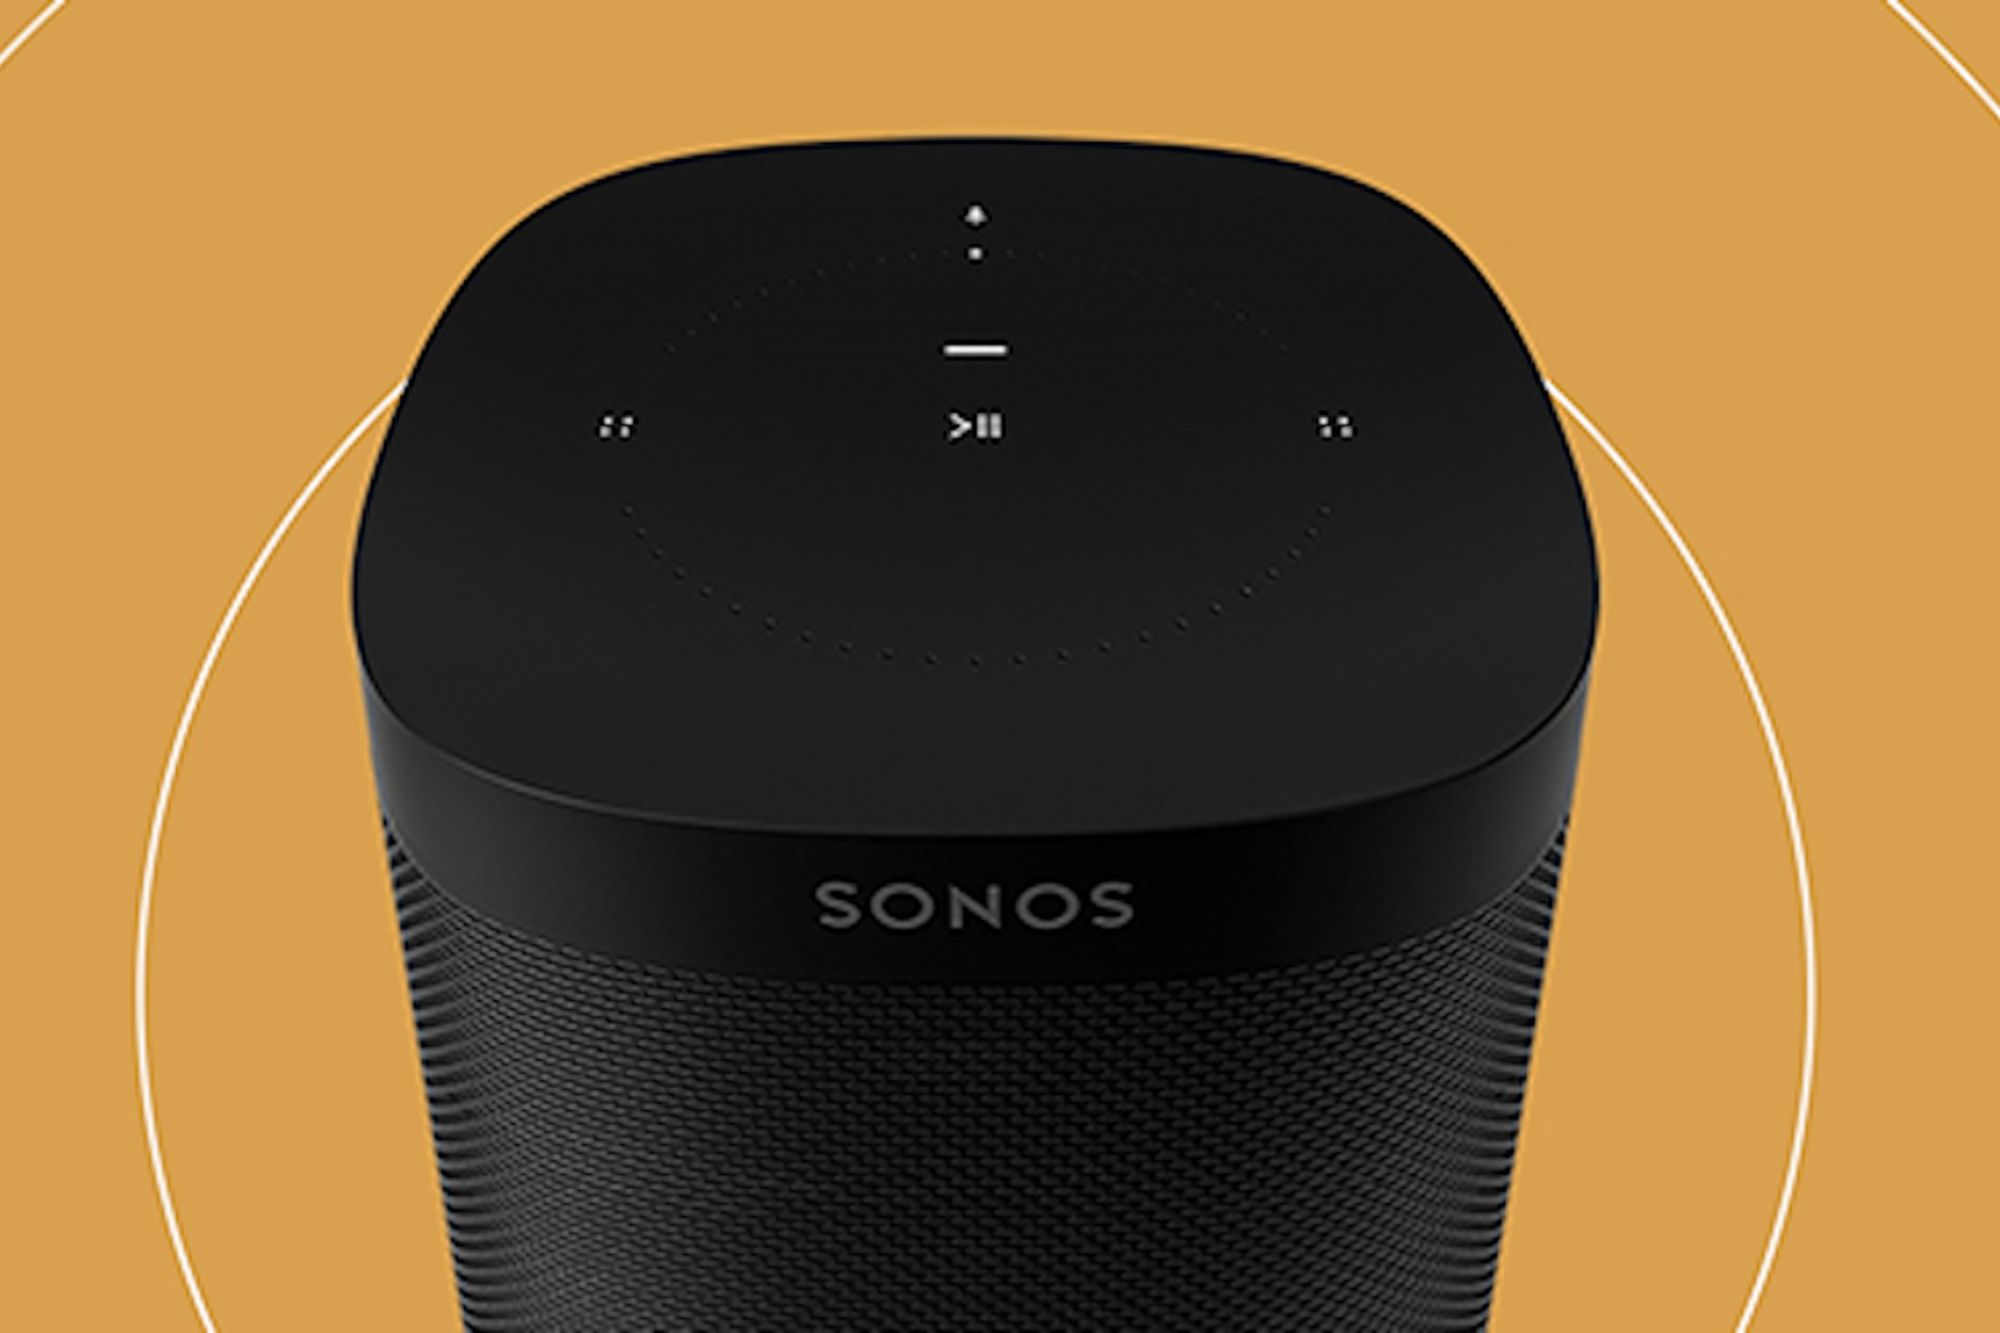 4 Reasons Why Sonos Is an Office Must Have